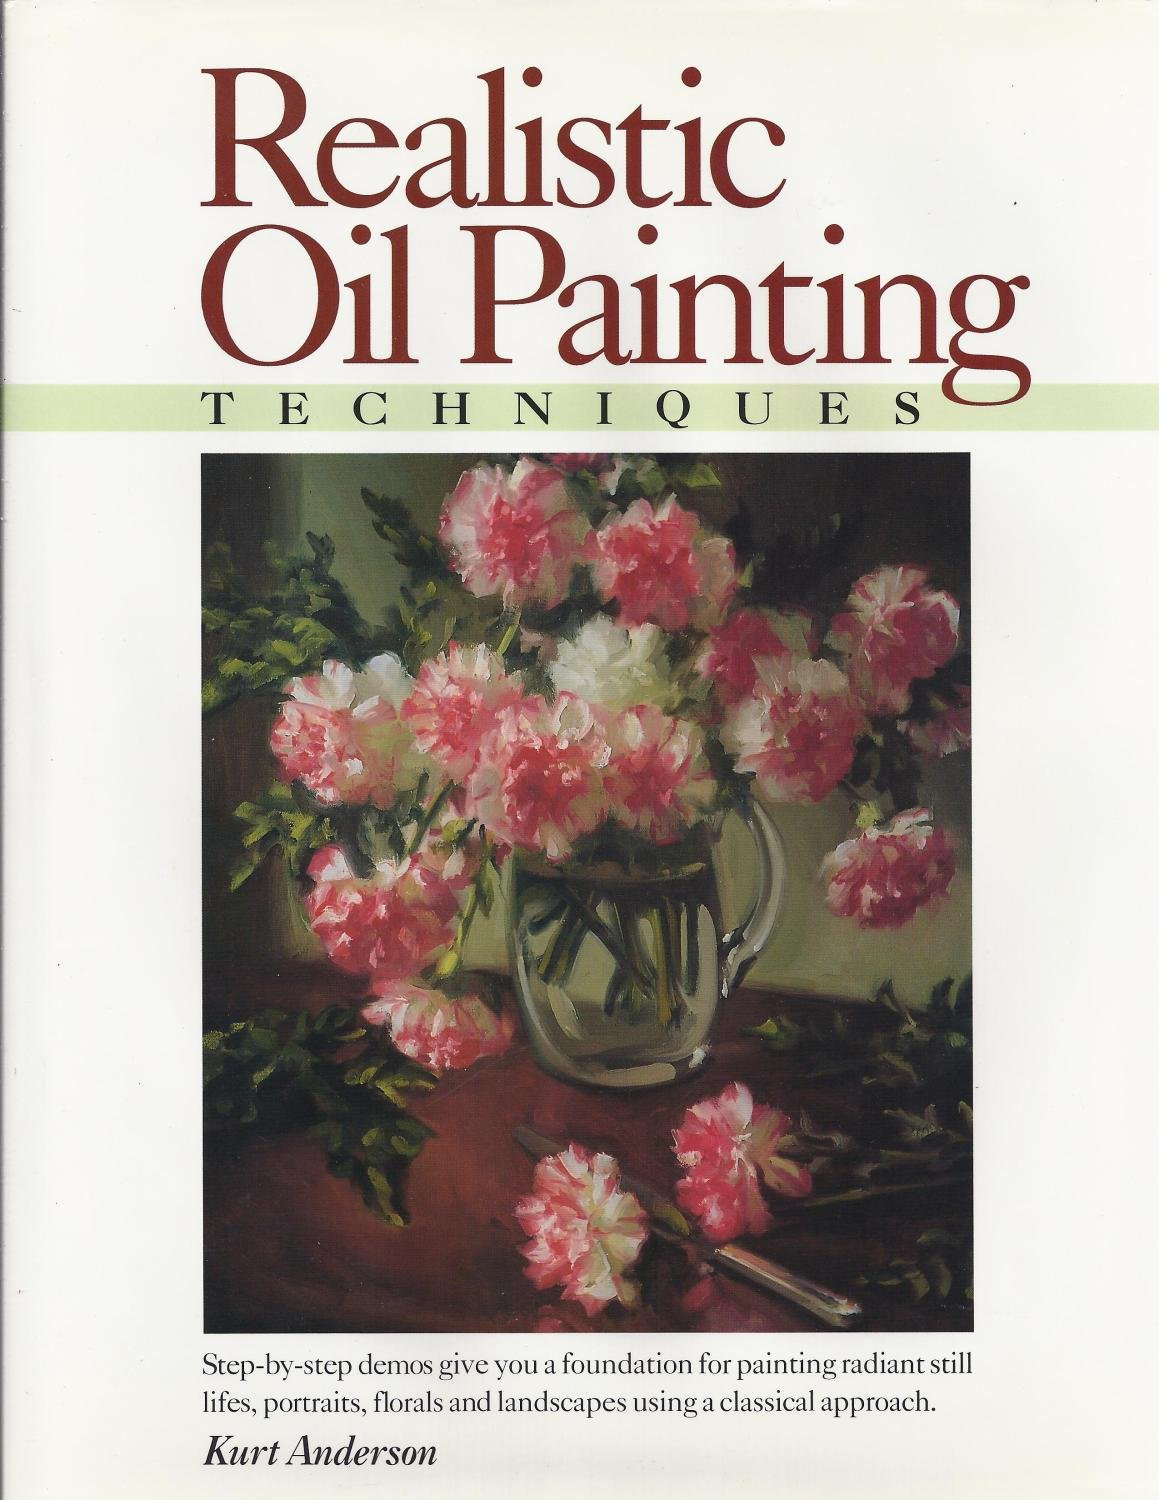 Buy Realistic Oil Painting Techniques Book Online at Low Prices in India |  Realistic Oil Painting Techniques Reviews & Ratings - Amazon.in